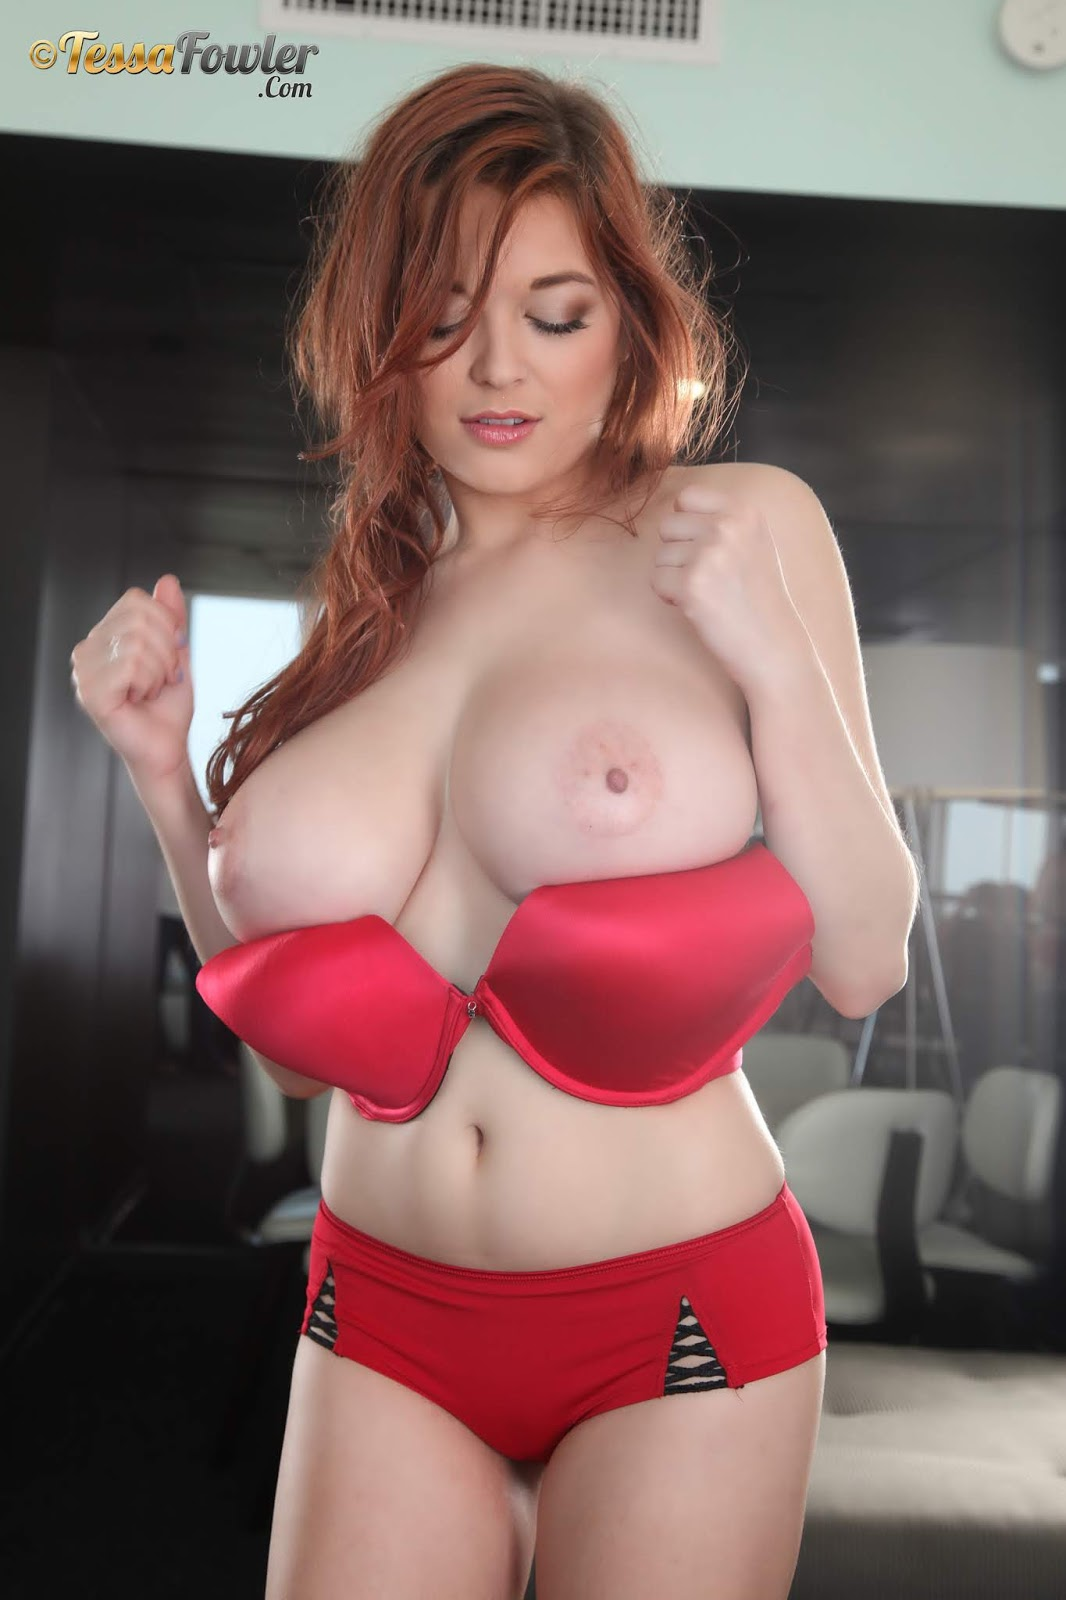 Gorgeous redhead titty cultures — img 14